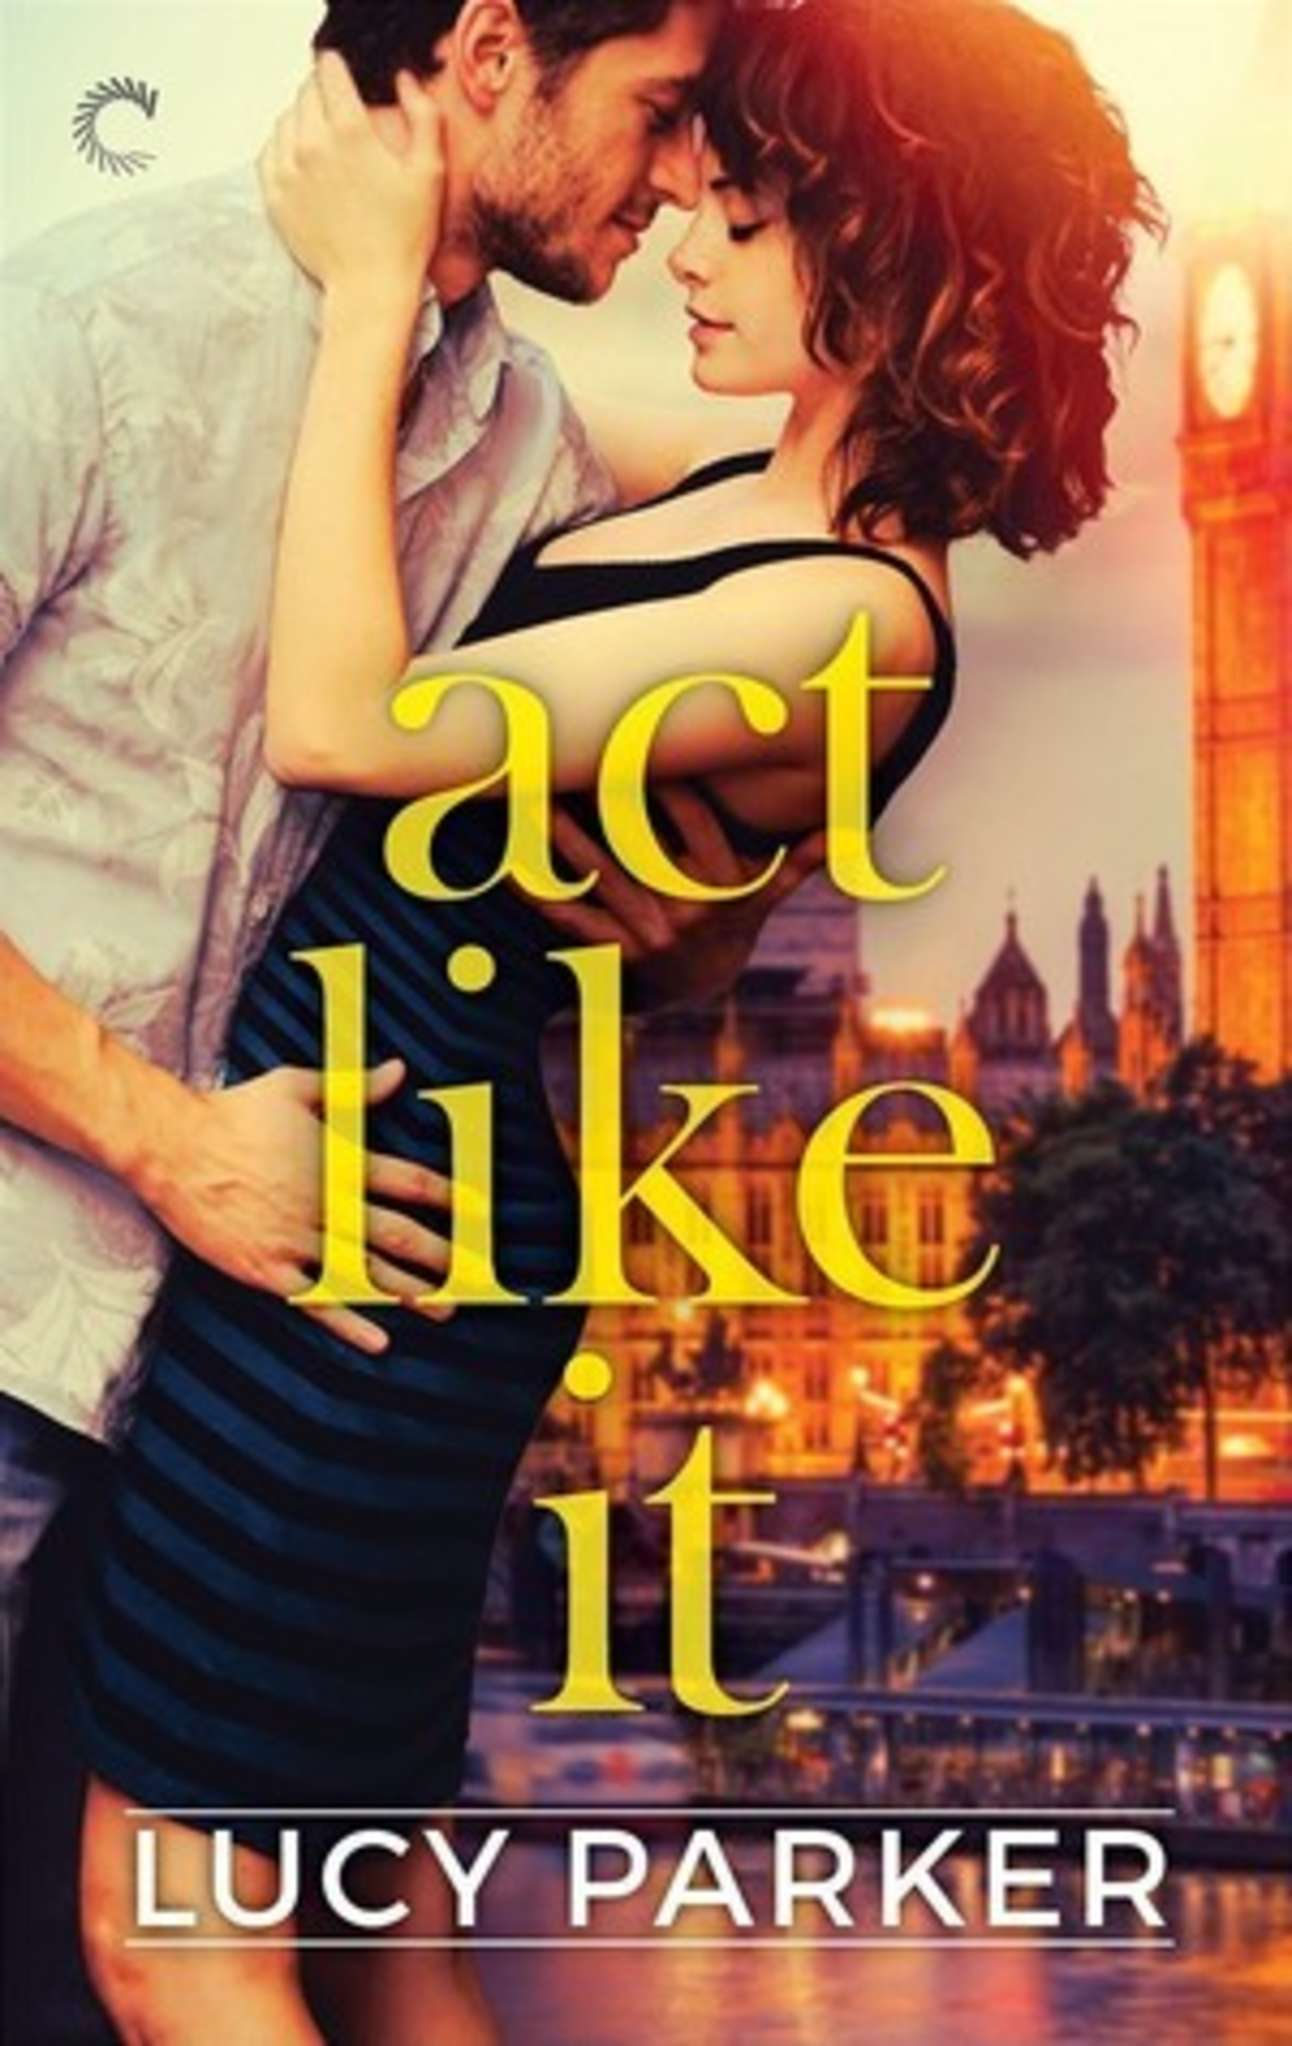 13 sci-fi and fantasy romances to check out this April